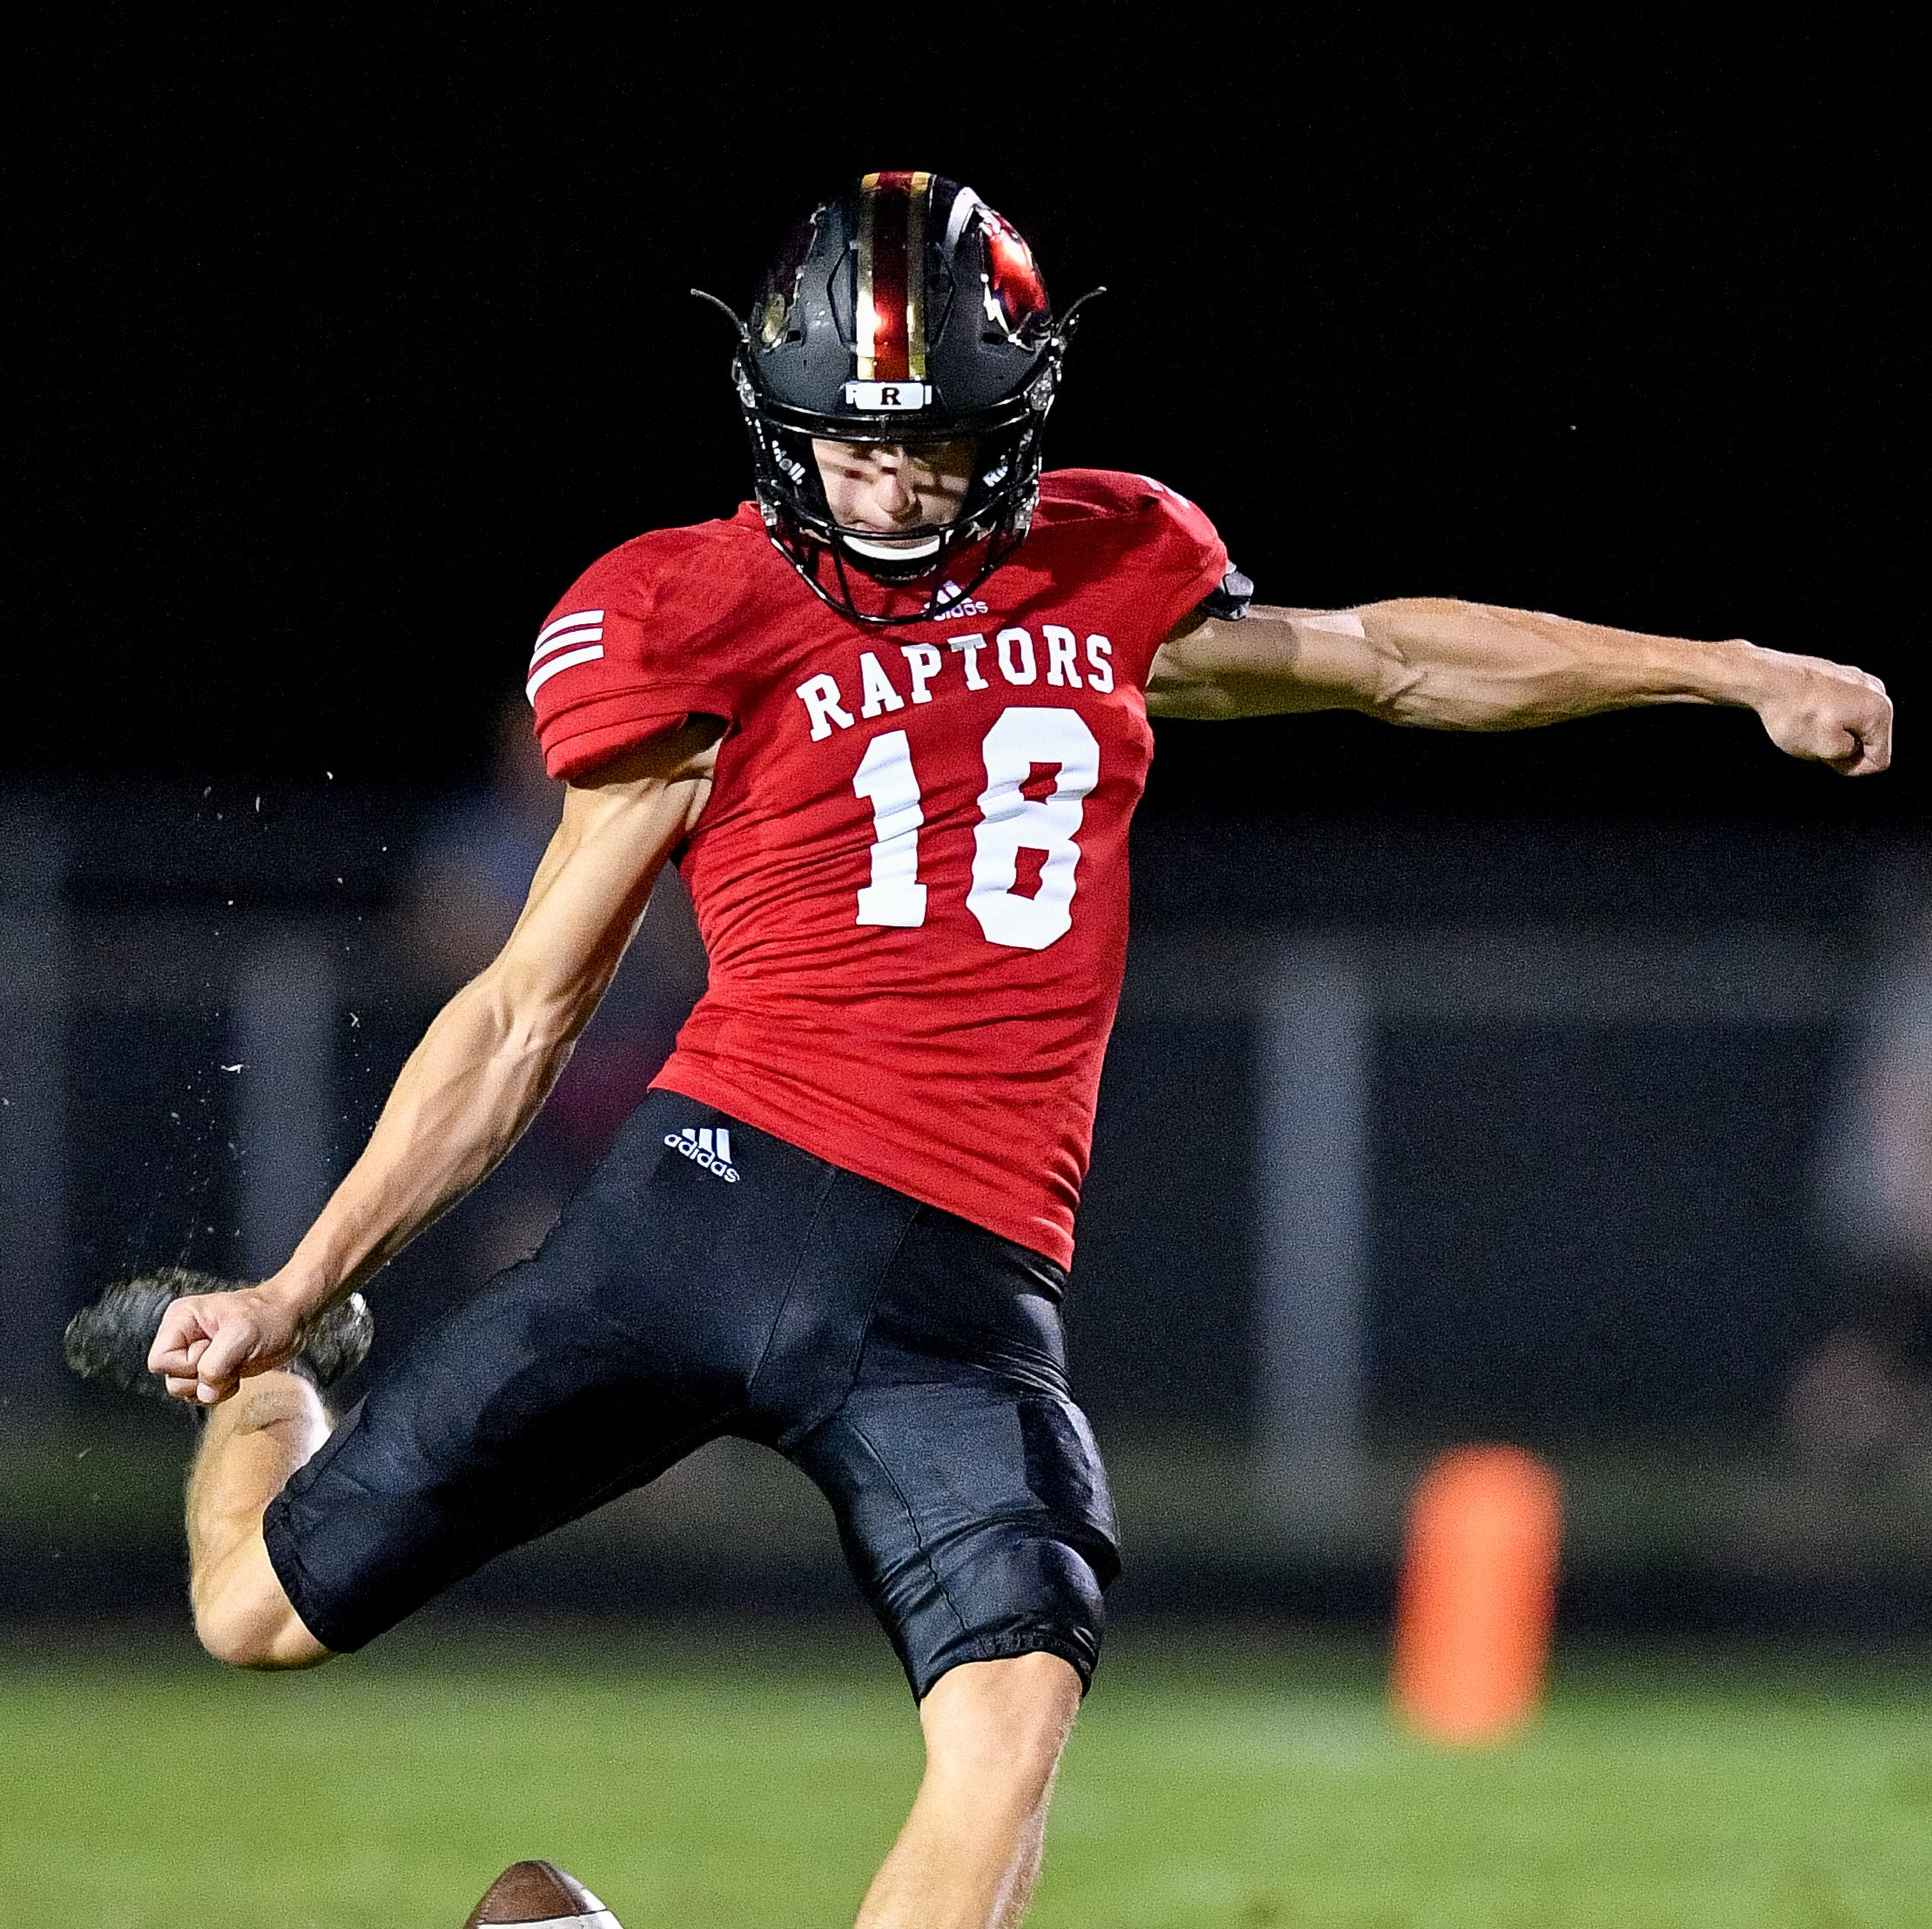 Former NFL star David Akers' son, new to kicking for Ravenwood, has pro football dreams, too